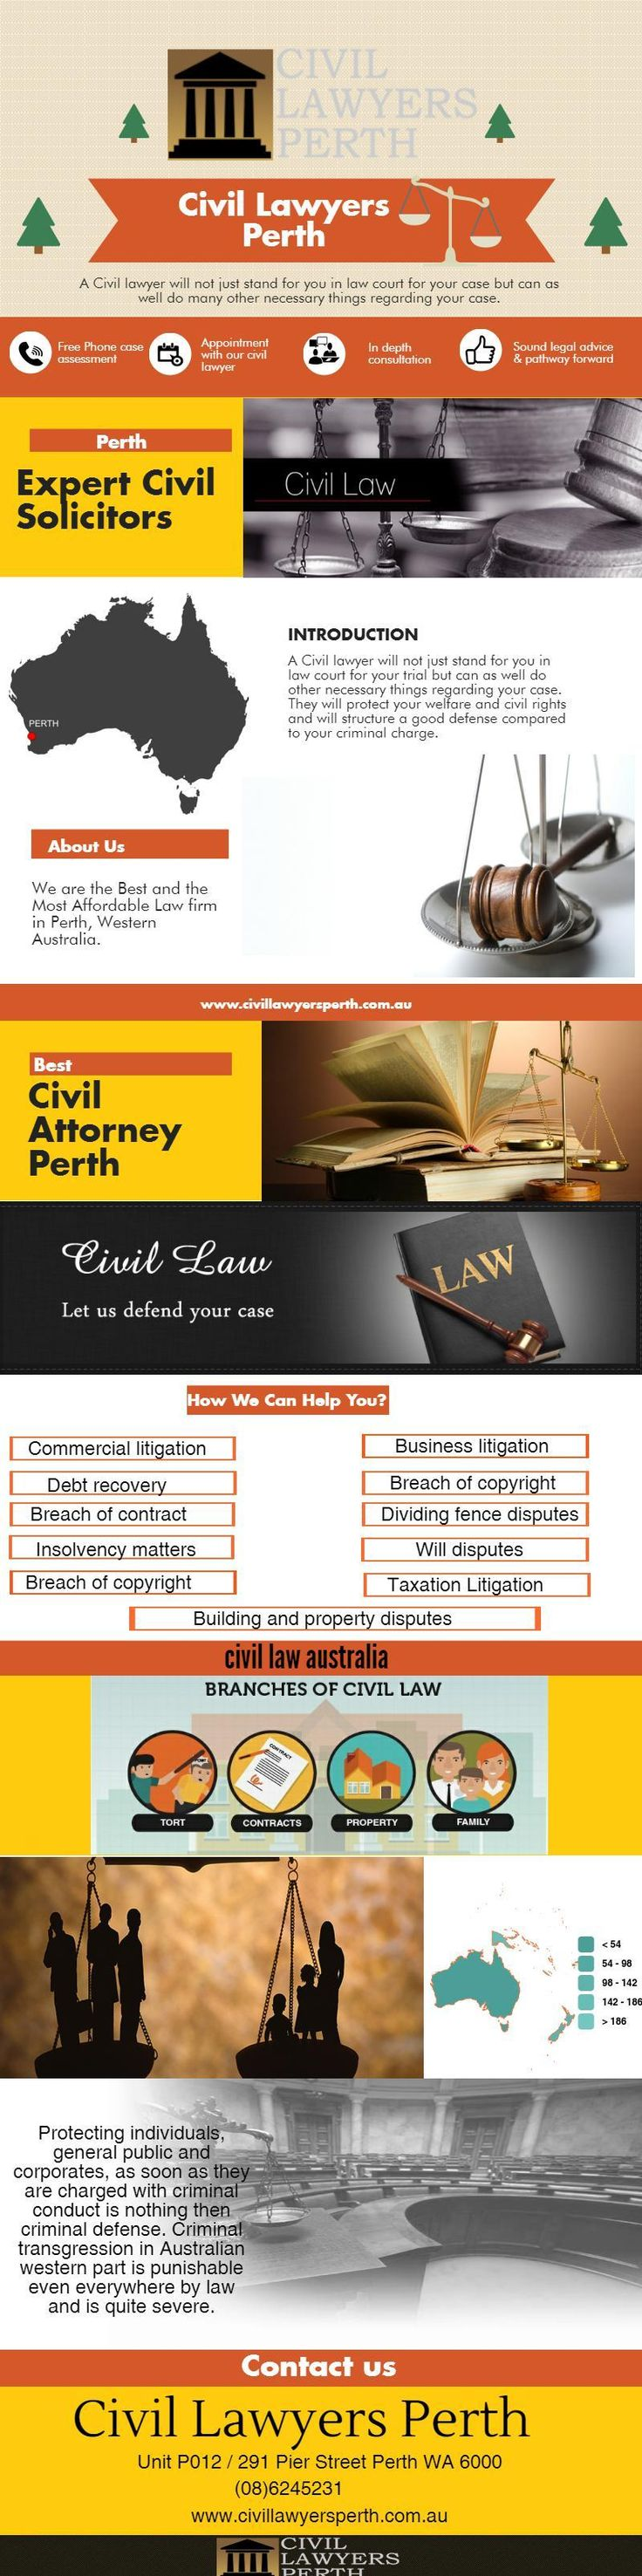 If you have struggled with a wrong legal dispute and chose to go to court. You need to consult with a professional Civil Lawyers Perth. Civil Attorney Perth can give you advice on how to best take care of your legal complication.